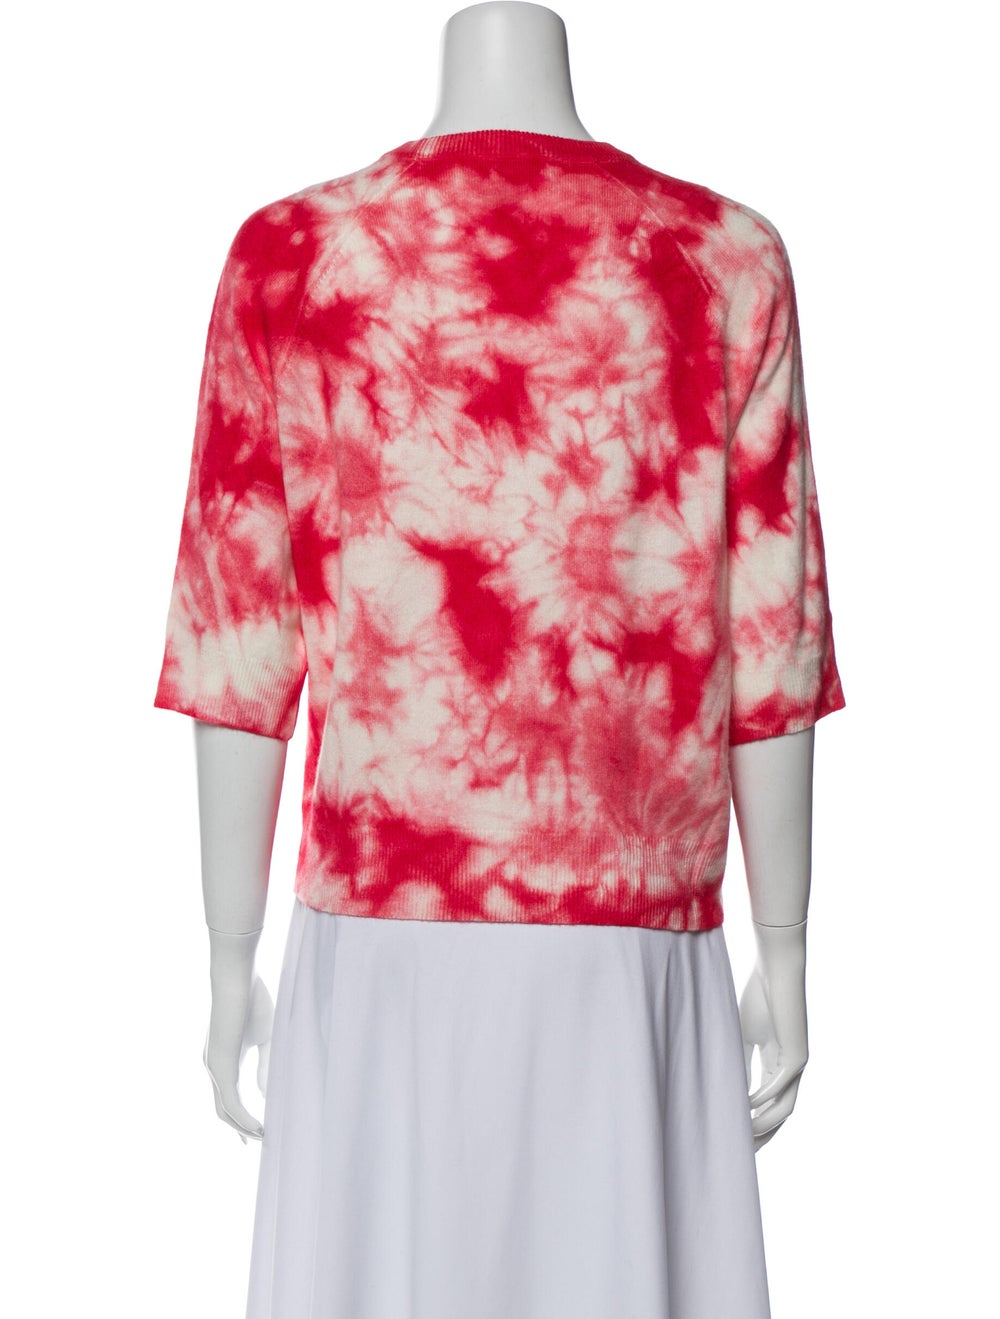 Michael Kors Cashmere Tie-Dye Print Sweater Red - image 3